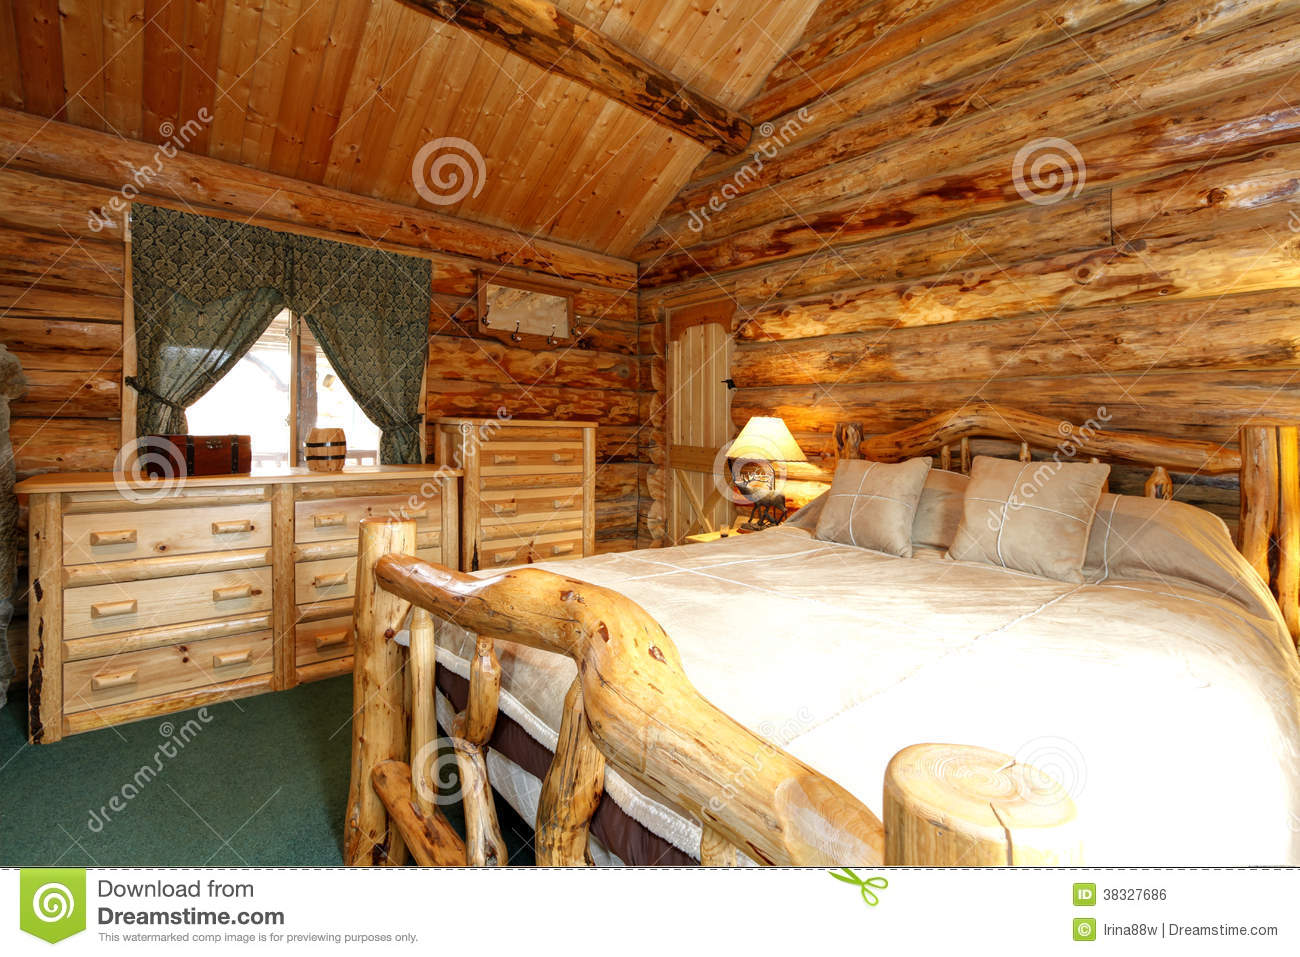 Cozy bedroom in log cabin house royalty free stock image - Imagenes de cabanas de madera ...